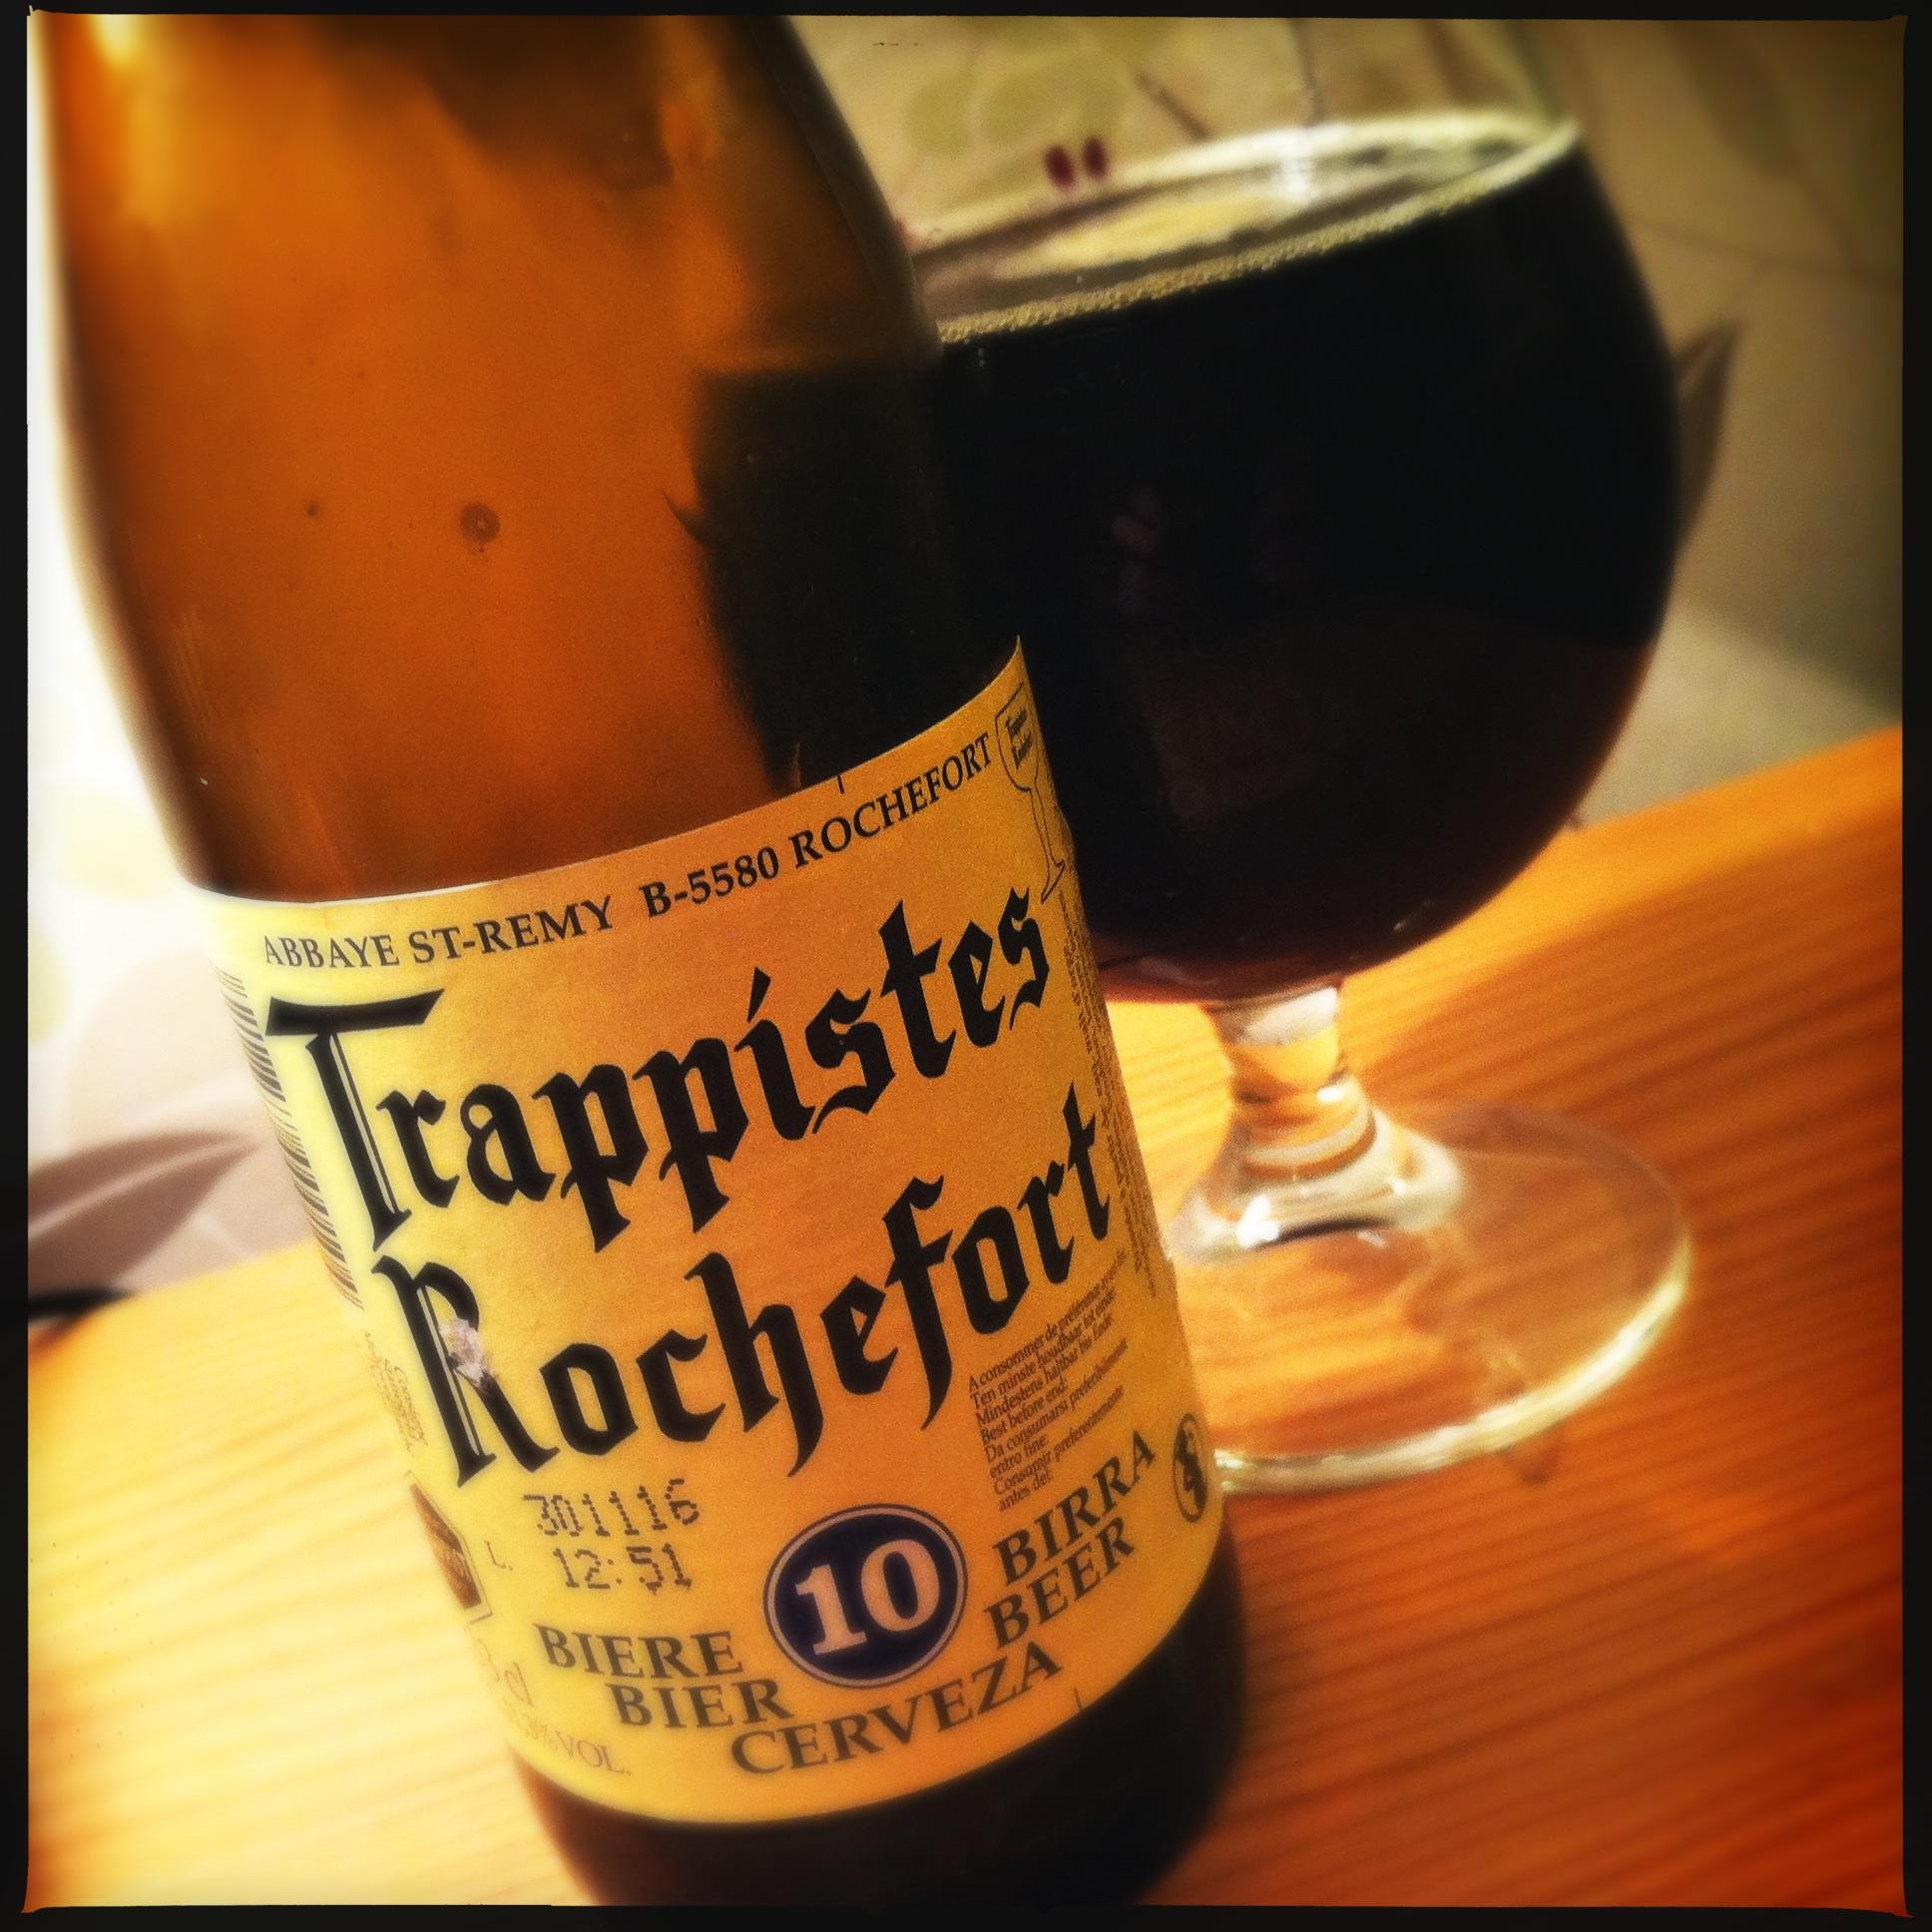 Abbaye St. Remy Trappistes Rochefort 10 (11.3%) | CAMRGB